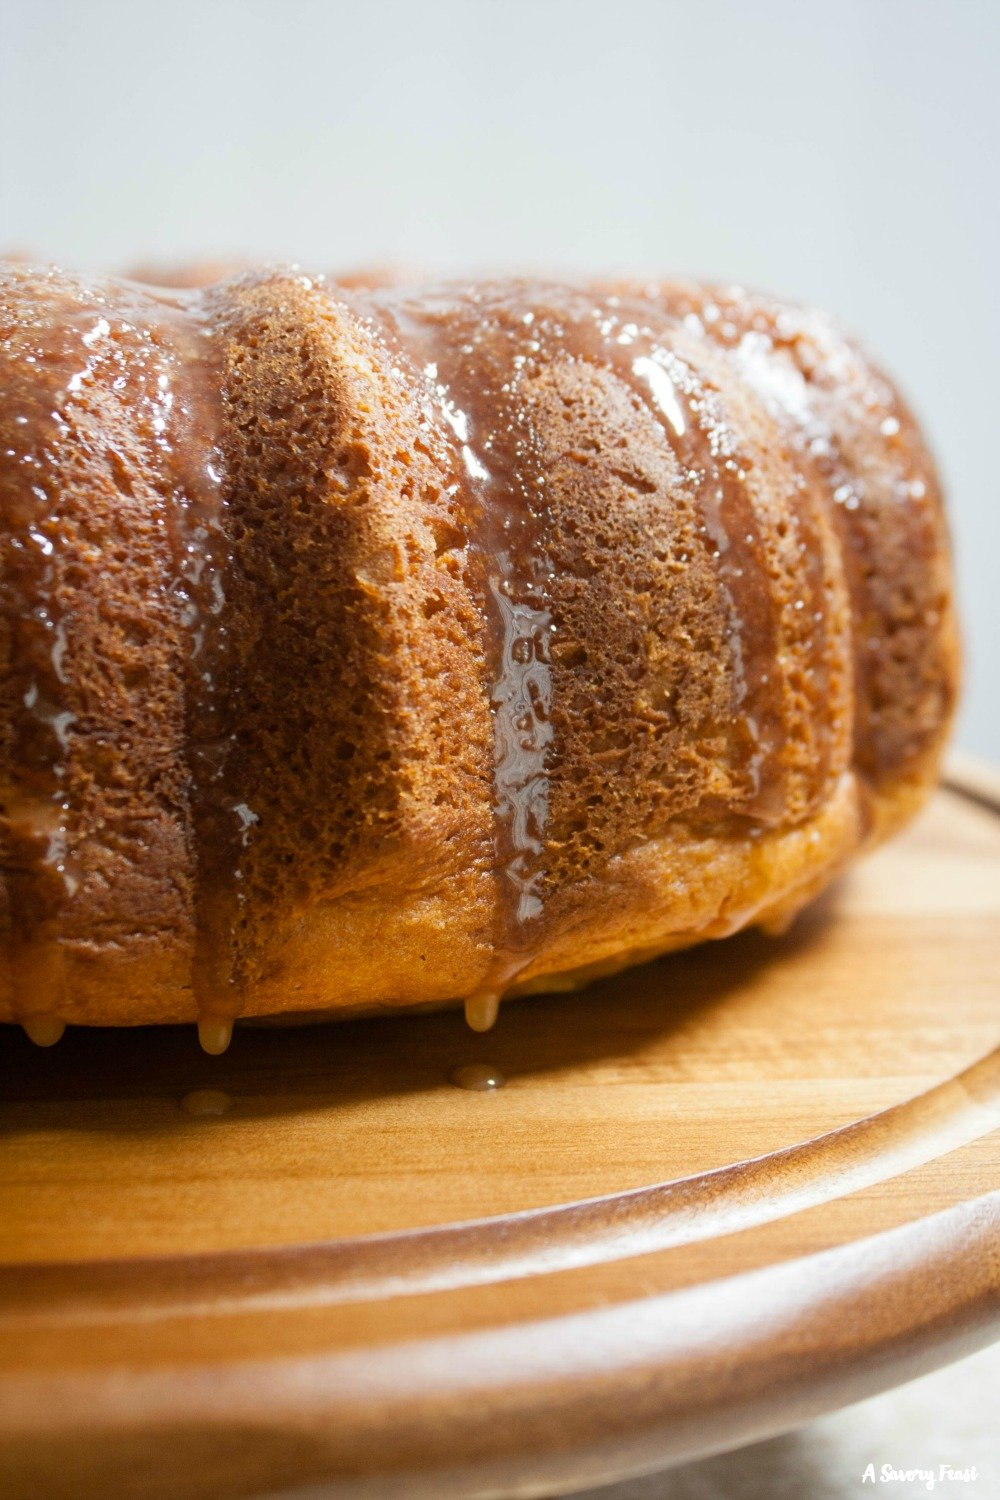 Dress up a boxed cake mix for Fall with this Pumpkin Cake with Salted Caramel Glaze.